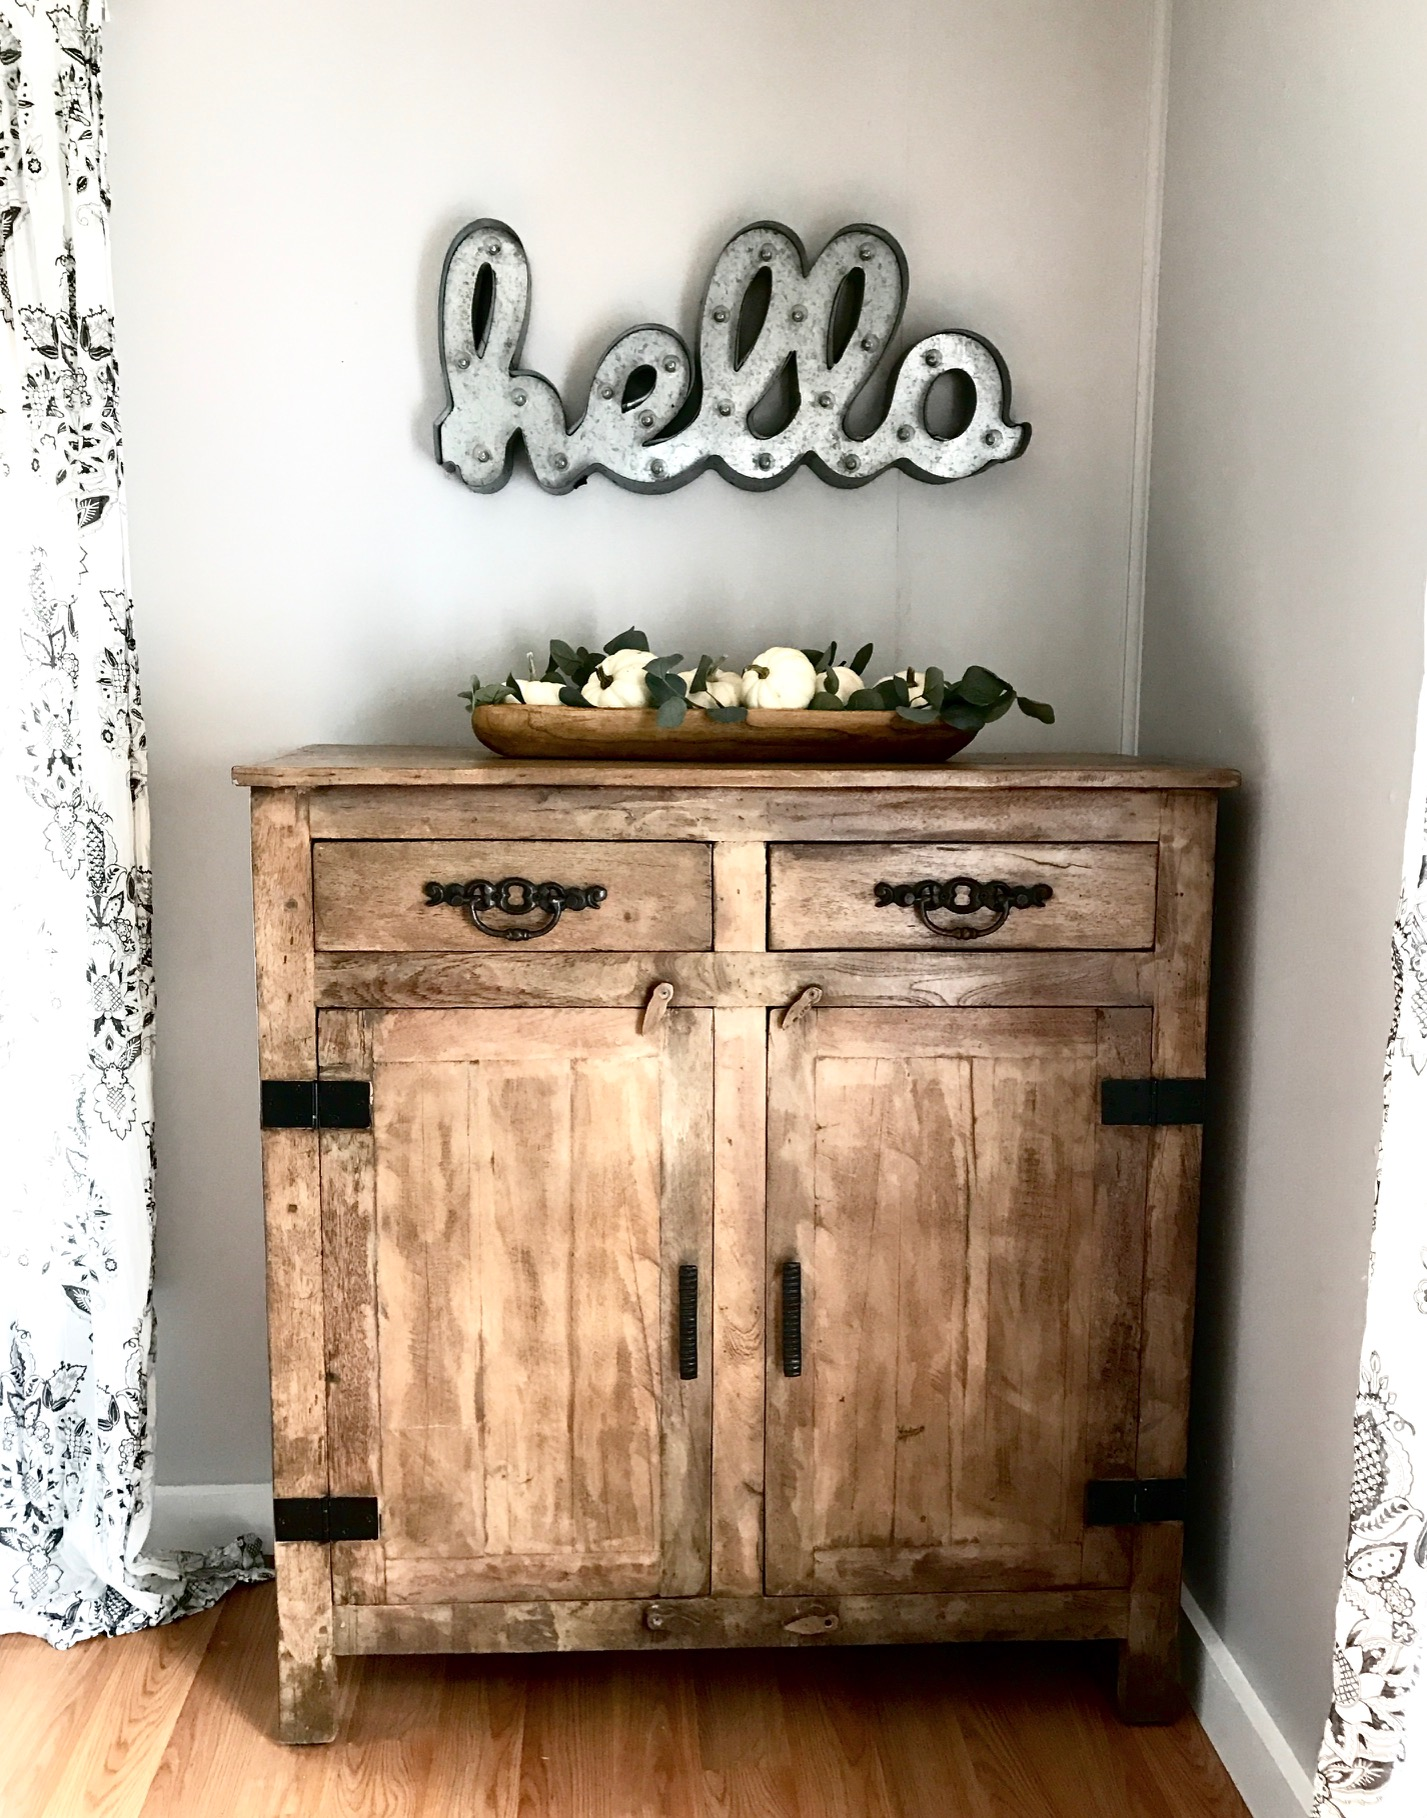 This stunning farmhouse dresser is far from missable in the corner - it's a fabulous DIY that any farmhouse lover would want